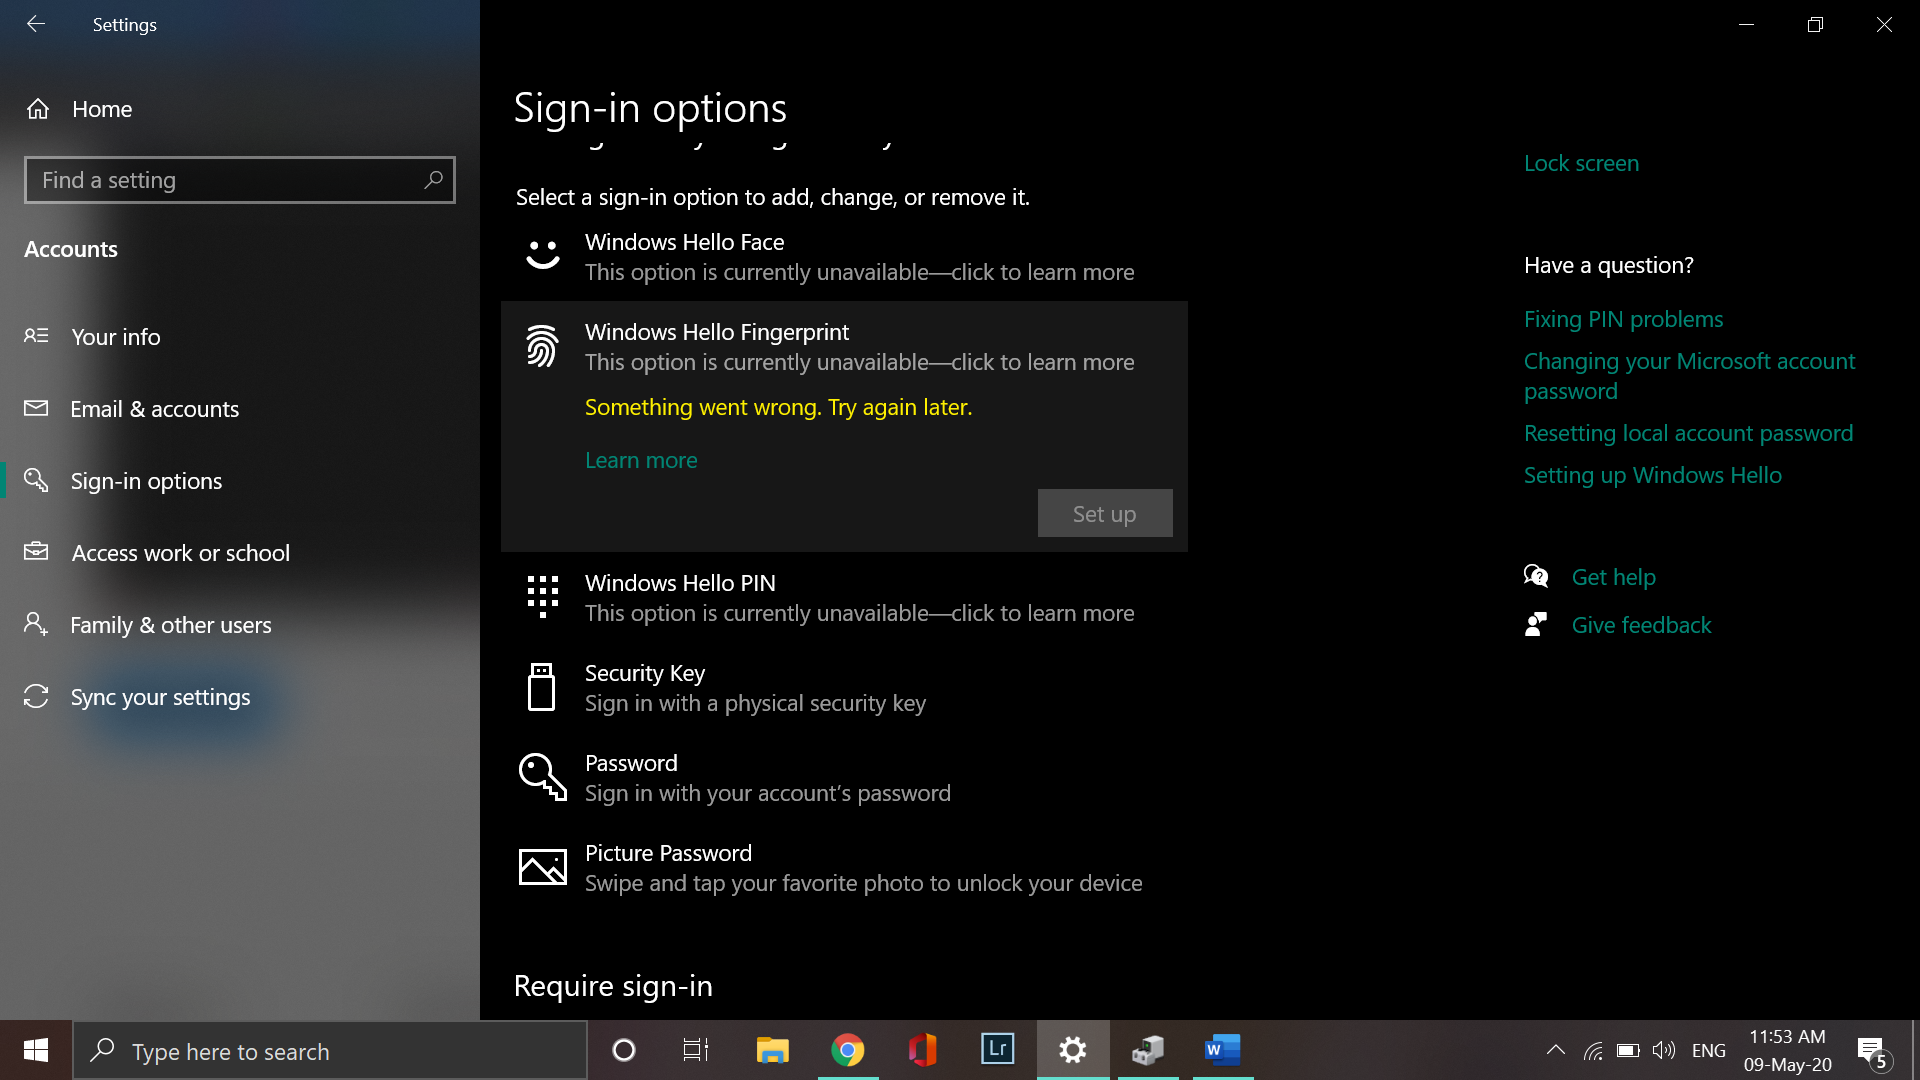 Windows Hello not working on Windows 10 1909 7fcd3af8-f8bc-4434-8c1d-0e9e566a9458?upload=true.png